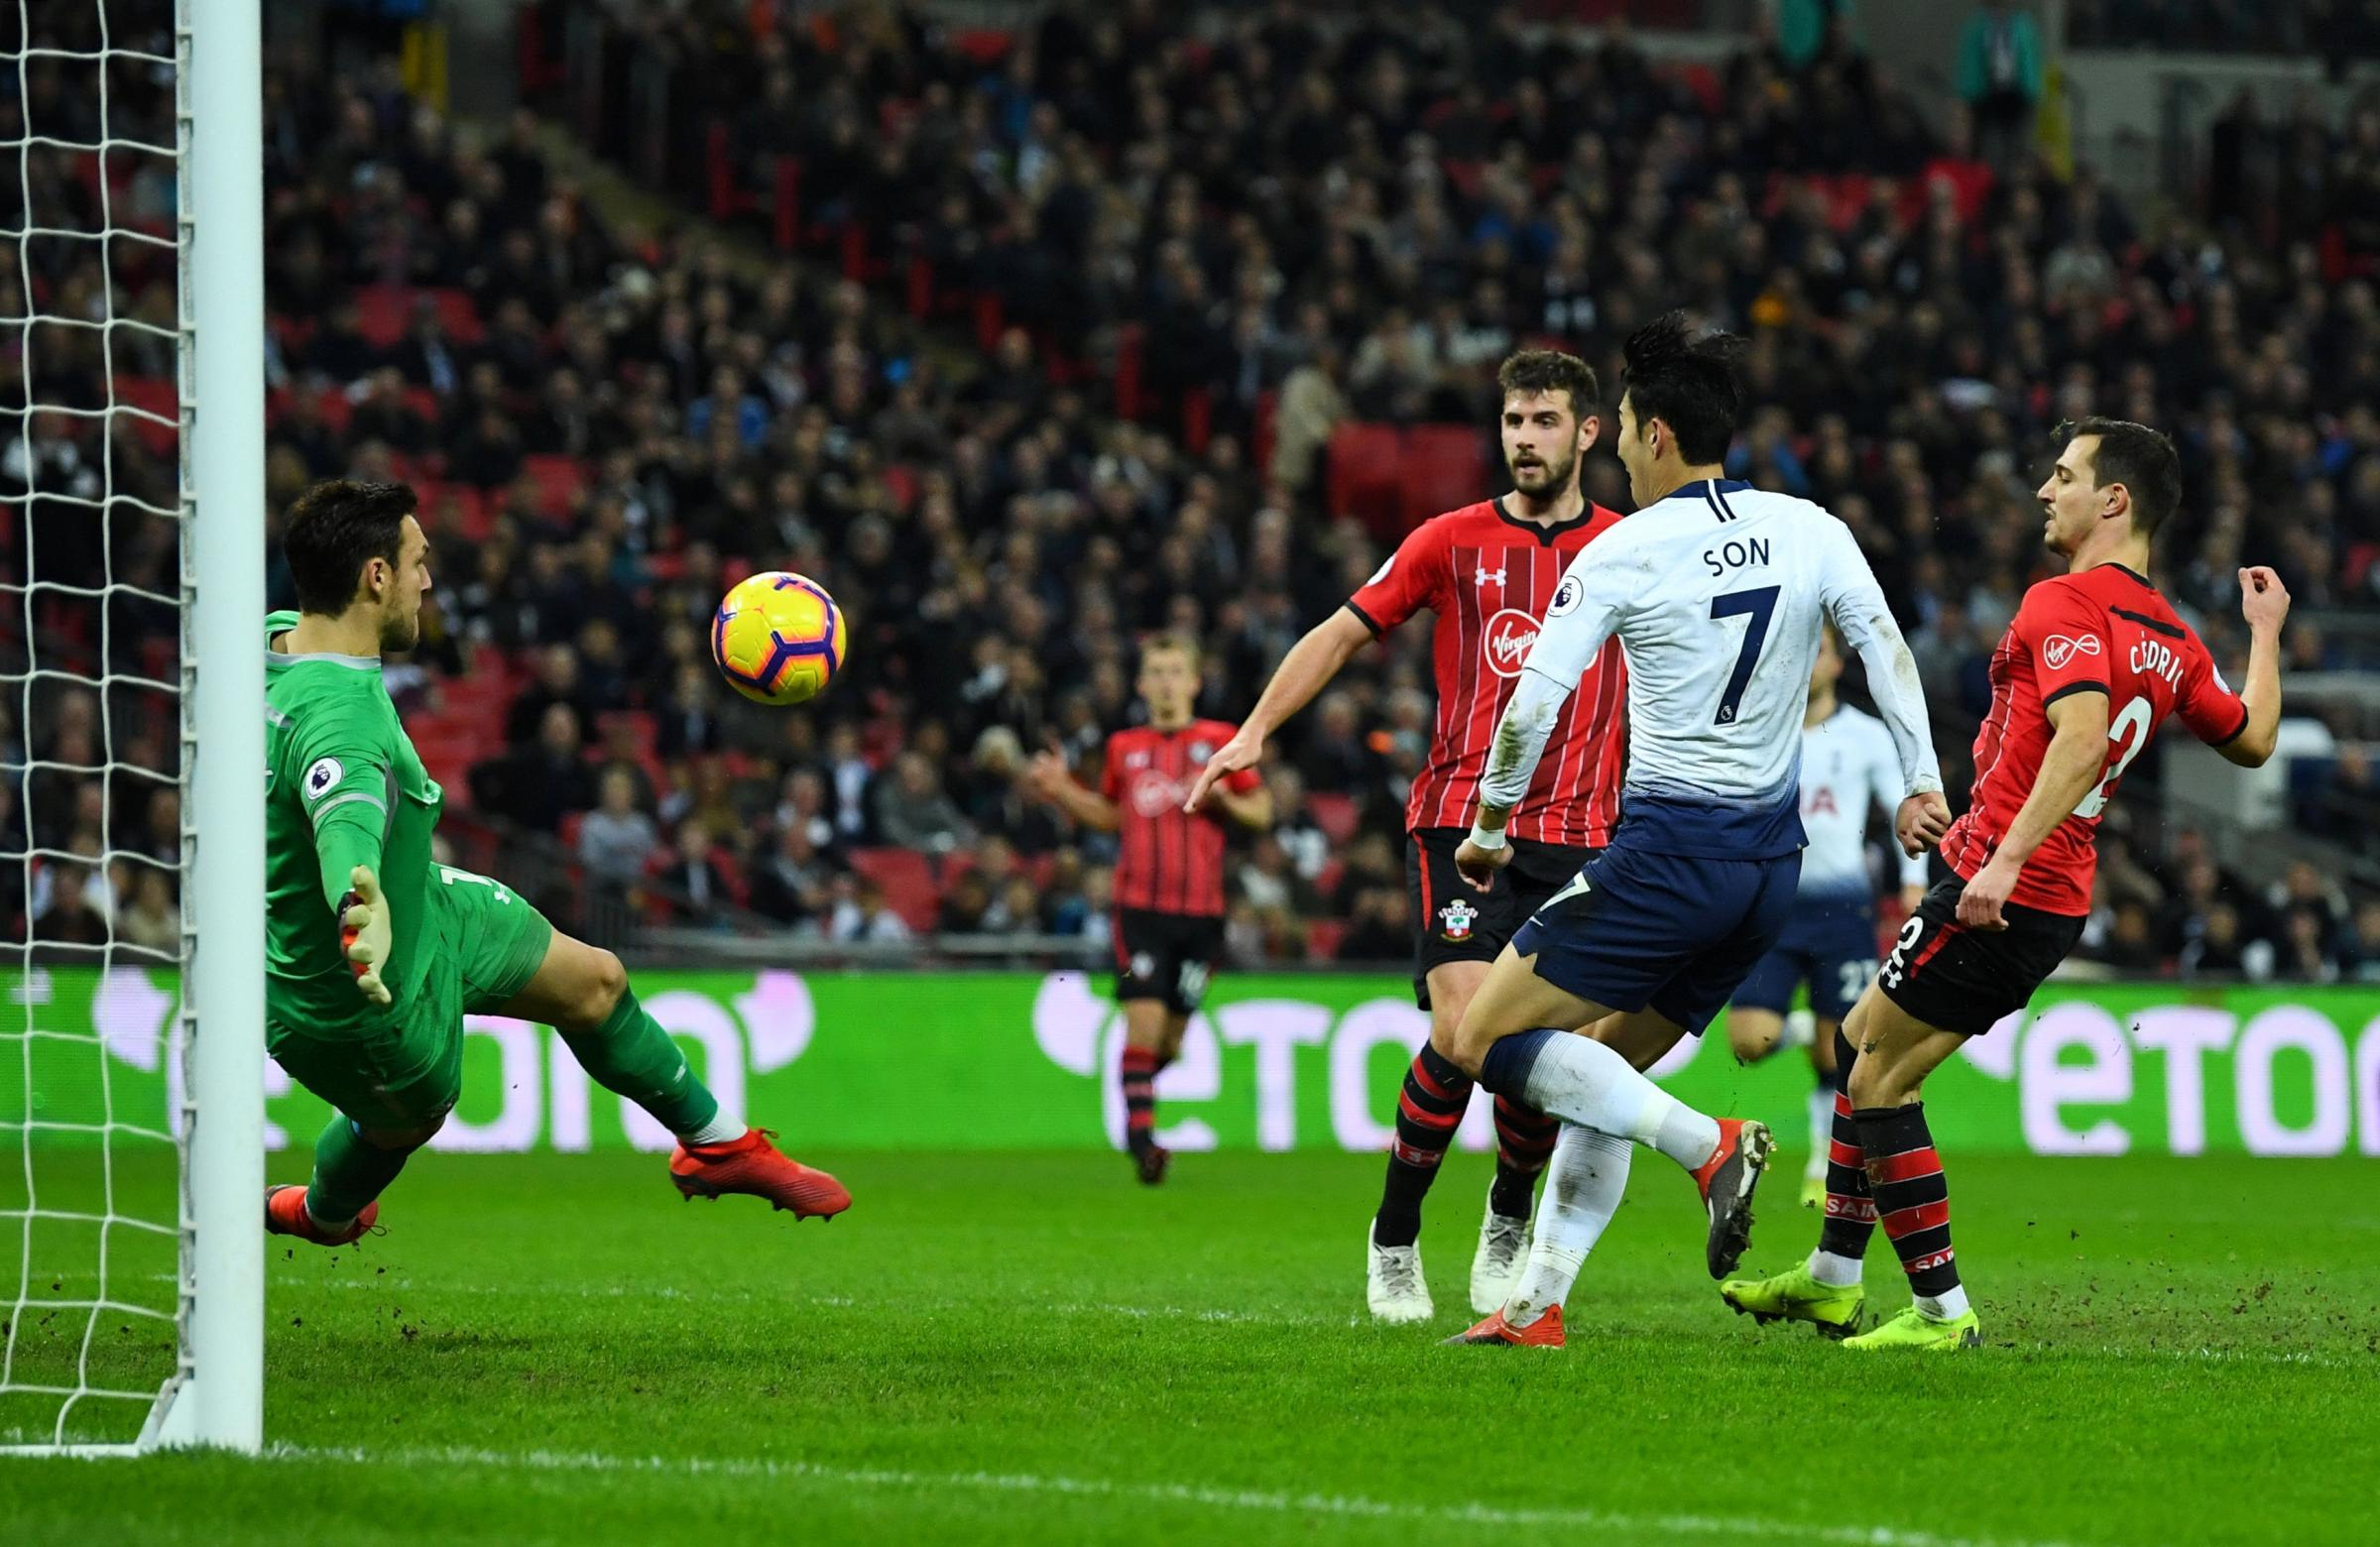 Victory sealed: Son Heung-min scores Tottenham's third goal. Picture: Action Images